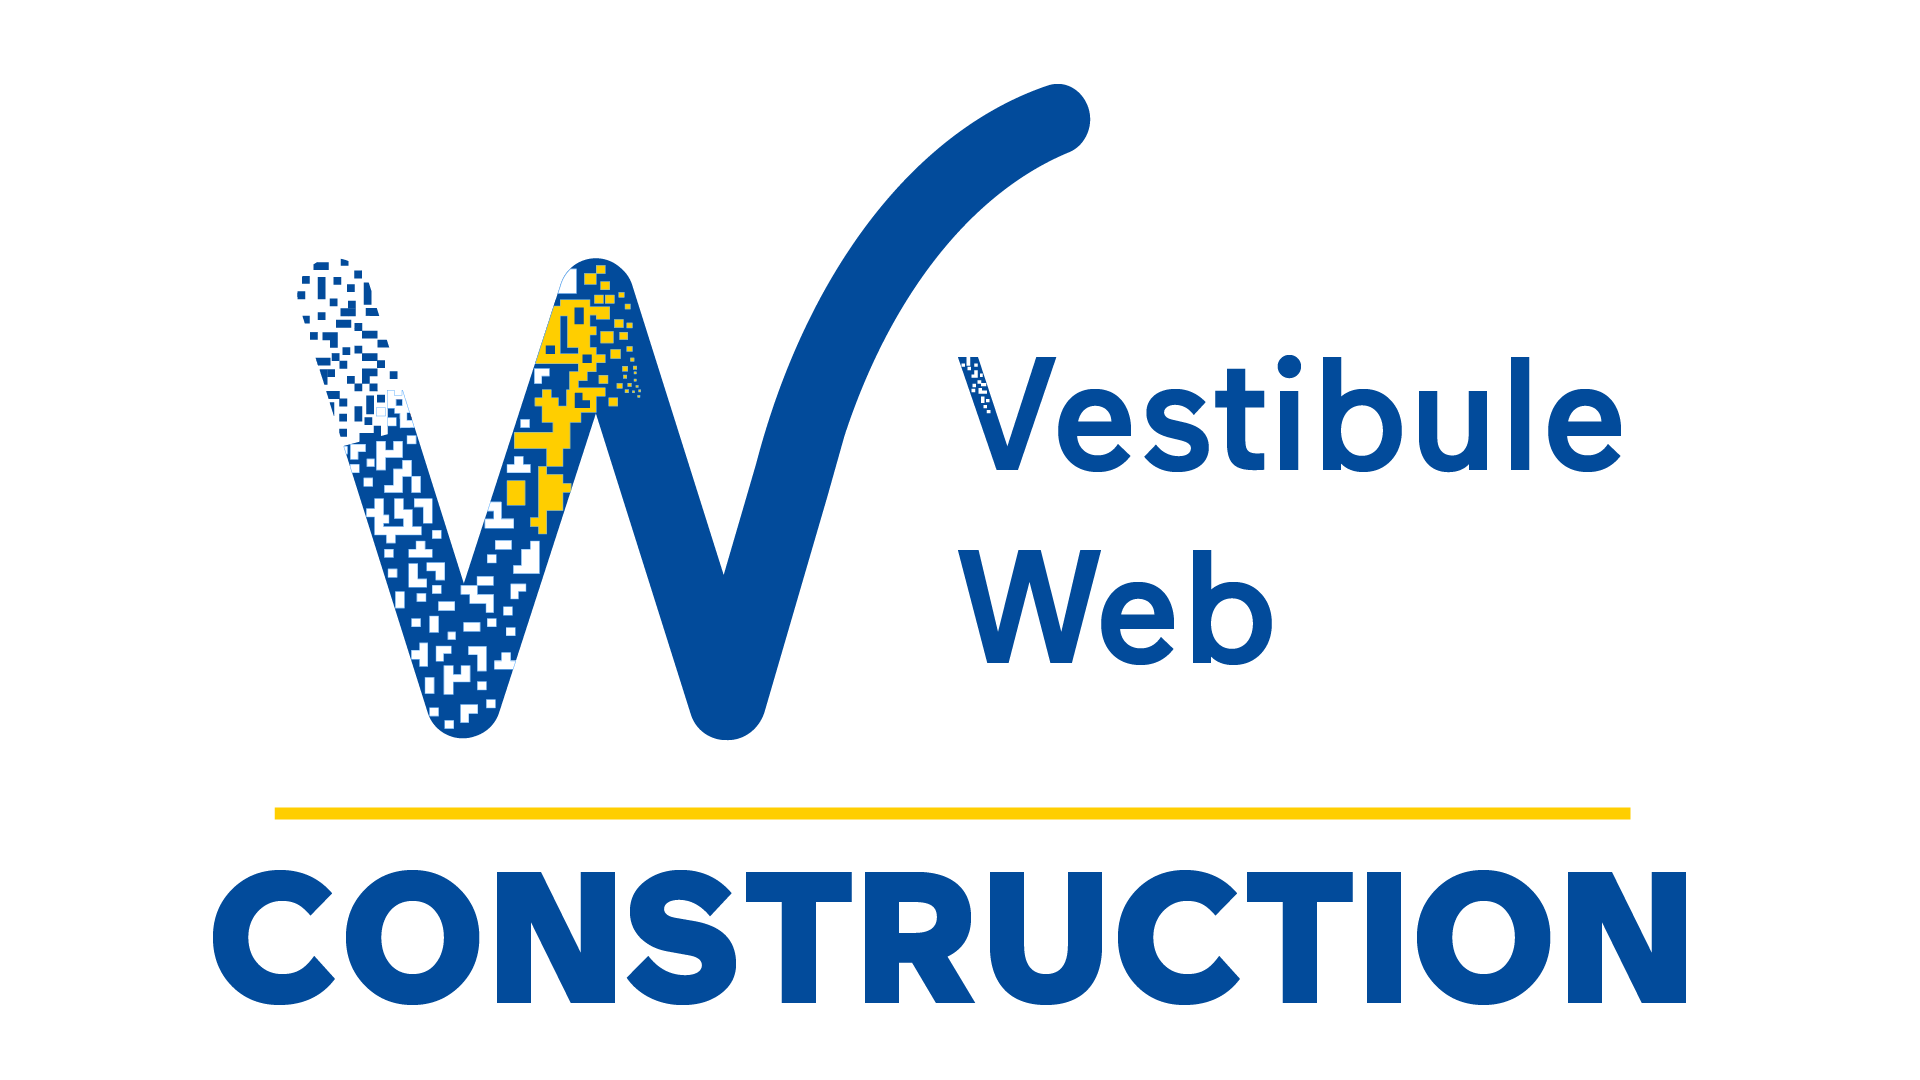 vestibule web construction